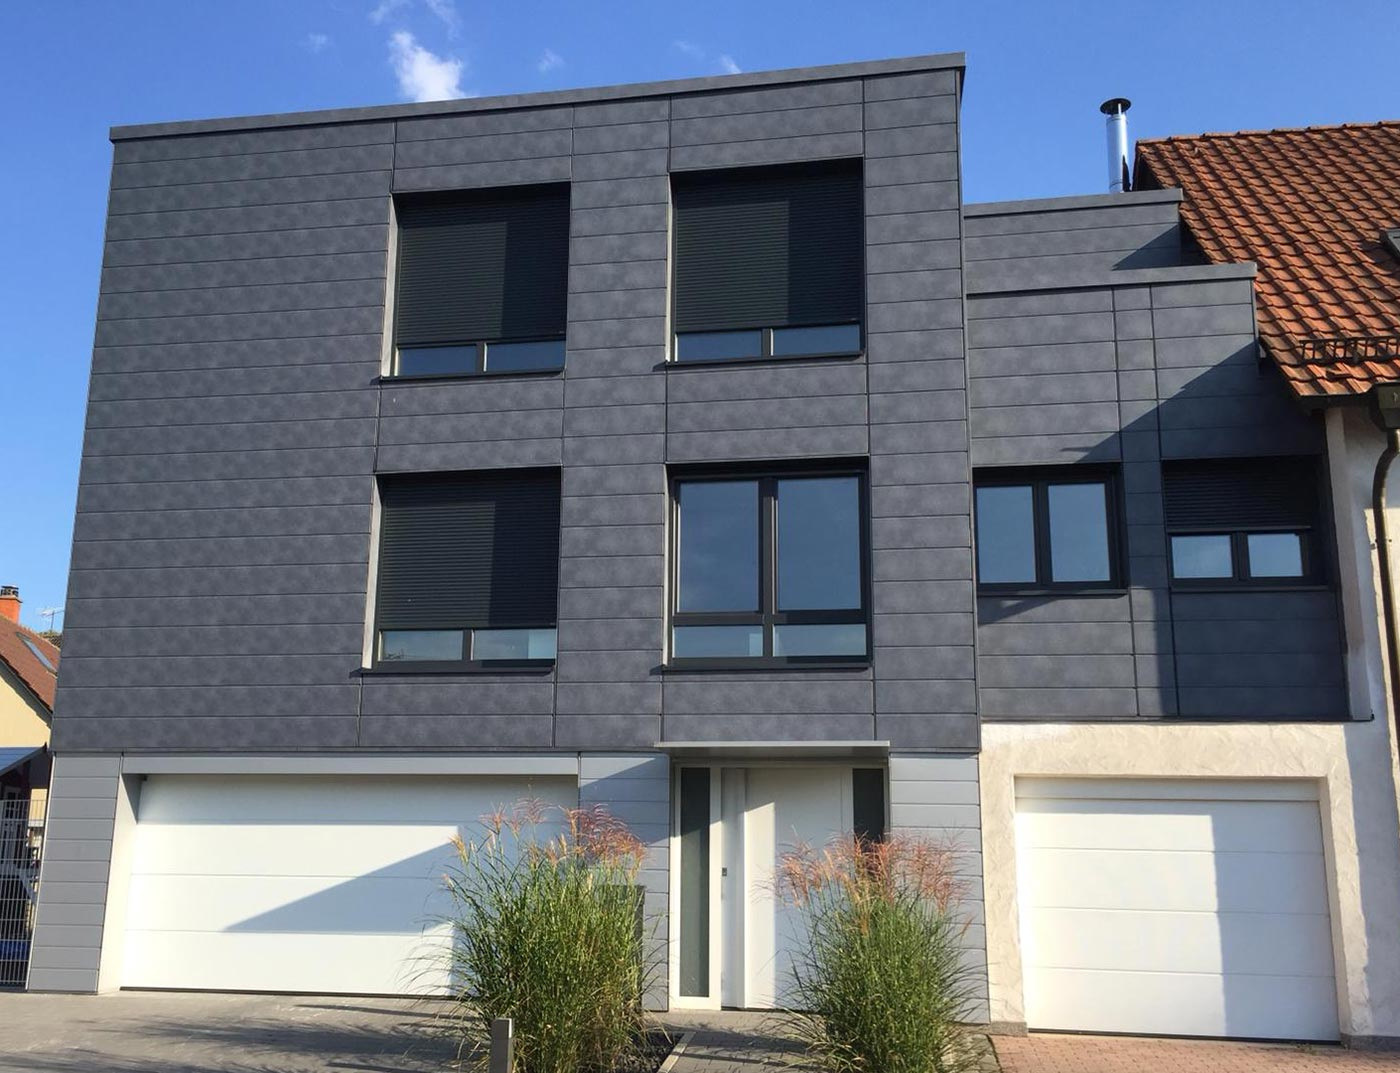 Façade design with aluminium panels, sidings in stone grey, from PREFA.